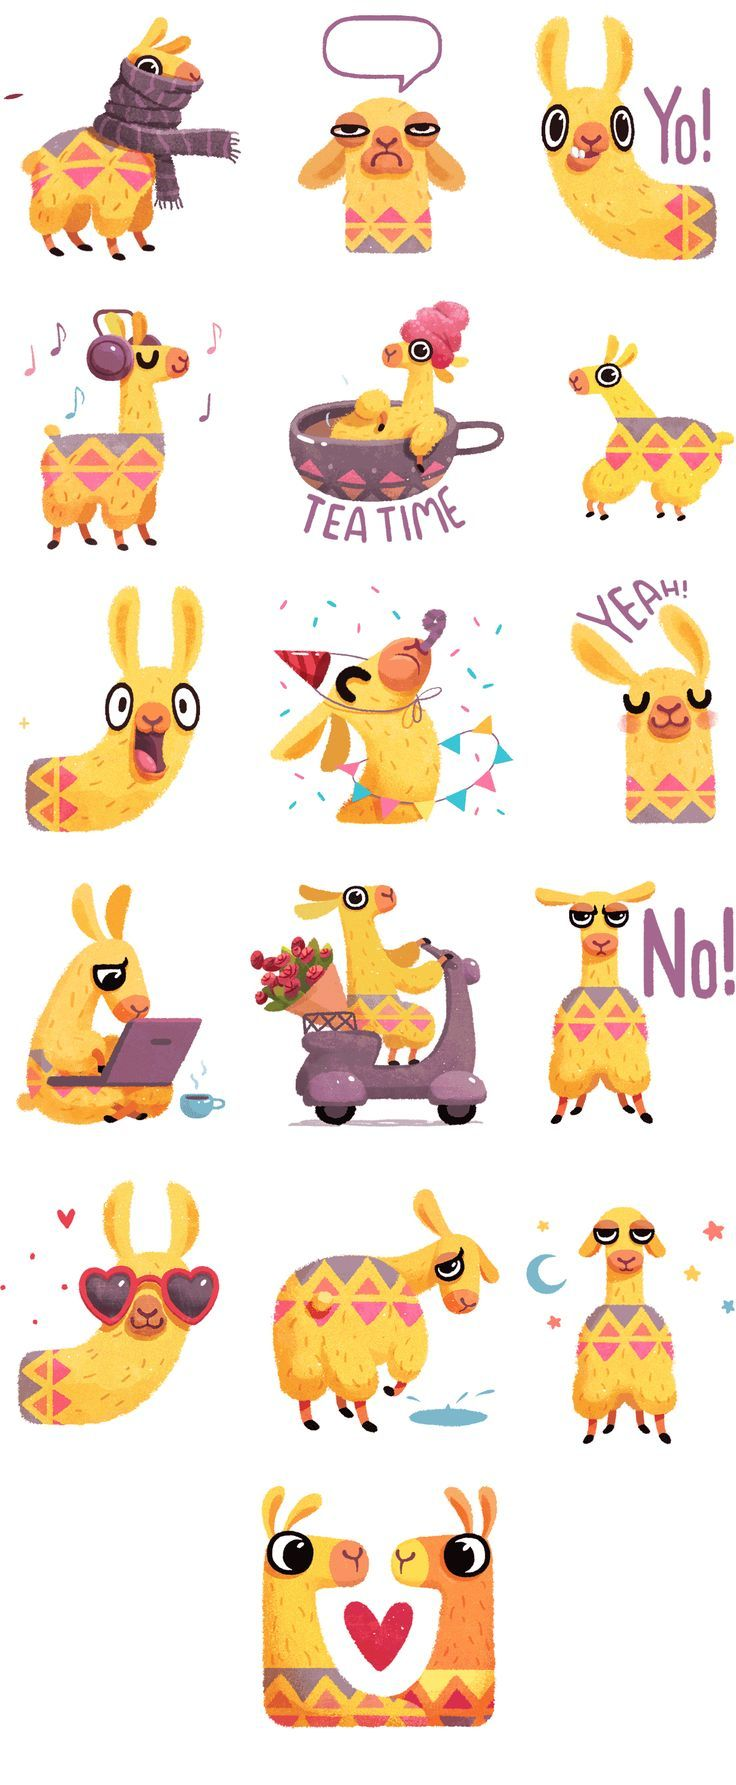 Hipster Llama iOS10 Sticker Pack on Behance